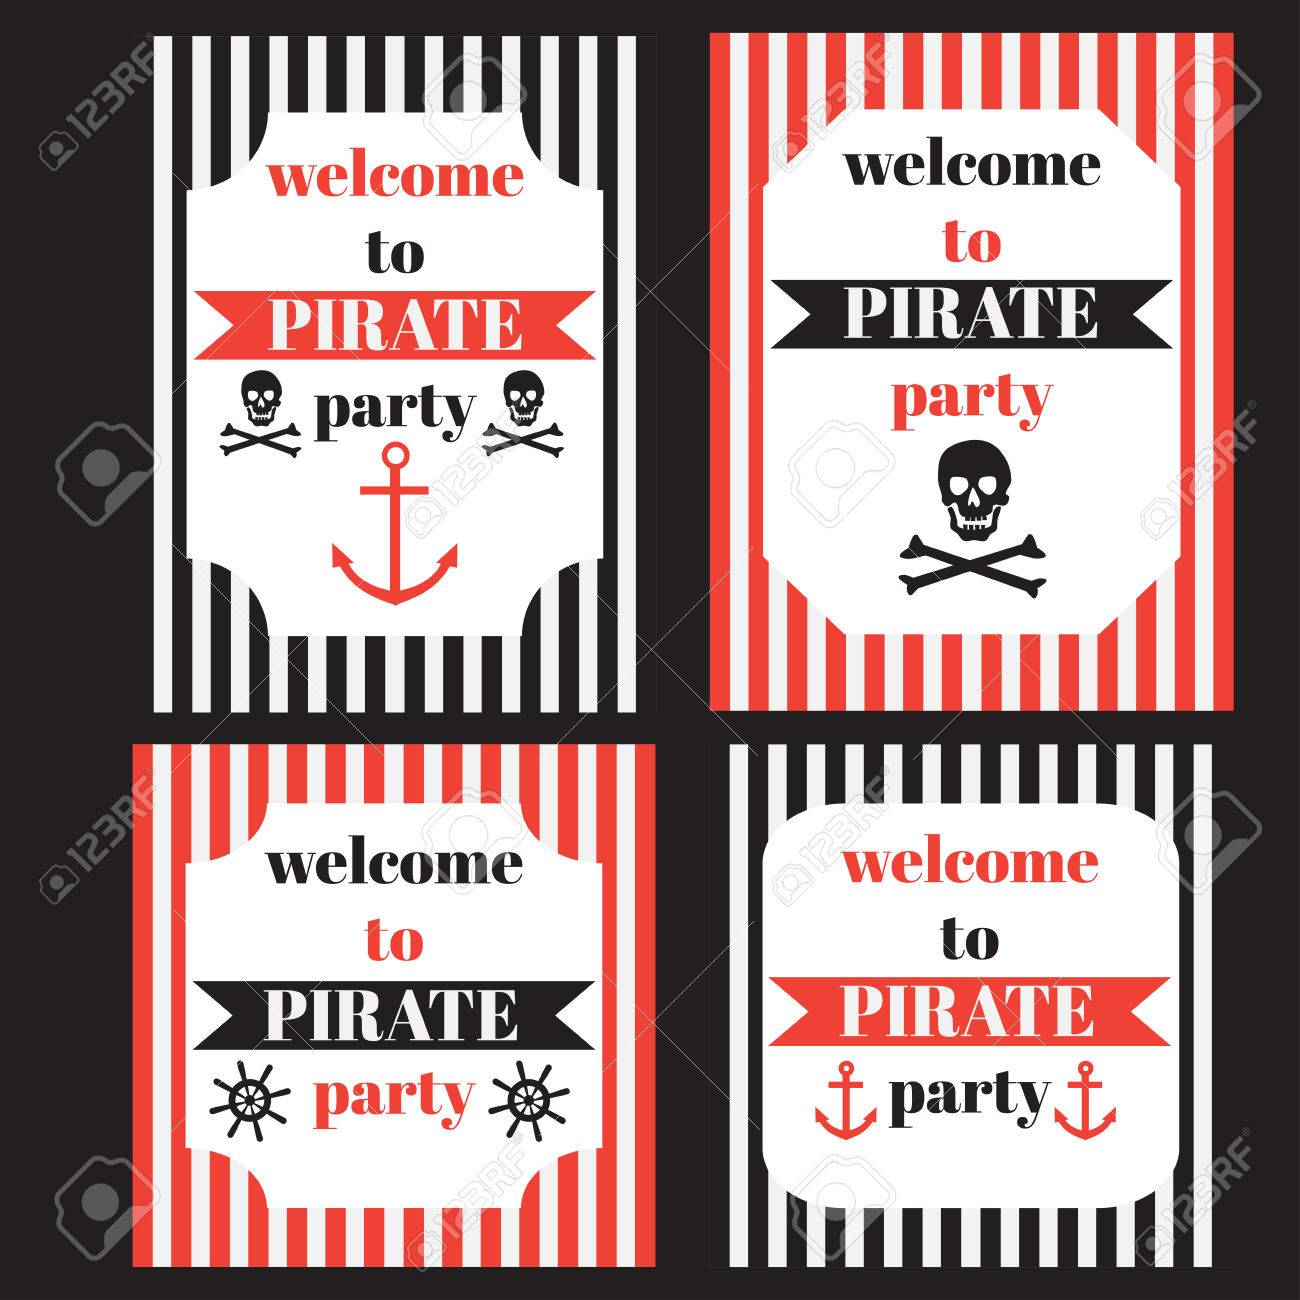 Vintage nautical pirate party invitation nautical marine sailor vintage nautical pirate party invitation nautical marine sailor elements stock vector 51985941 stopboris